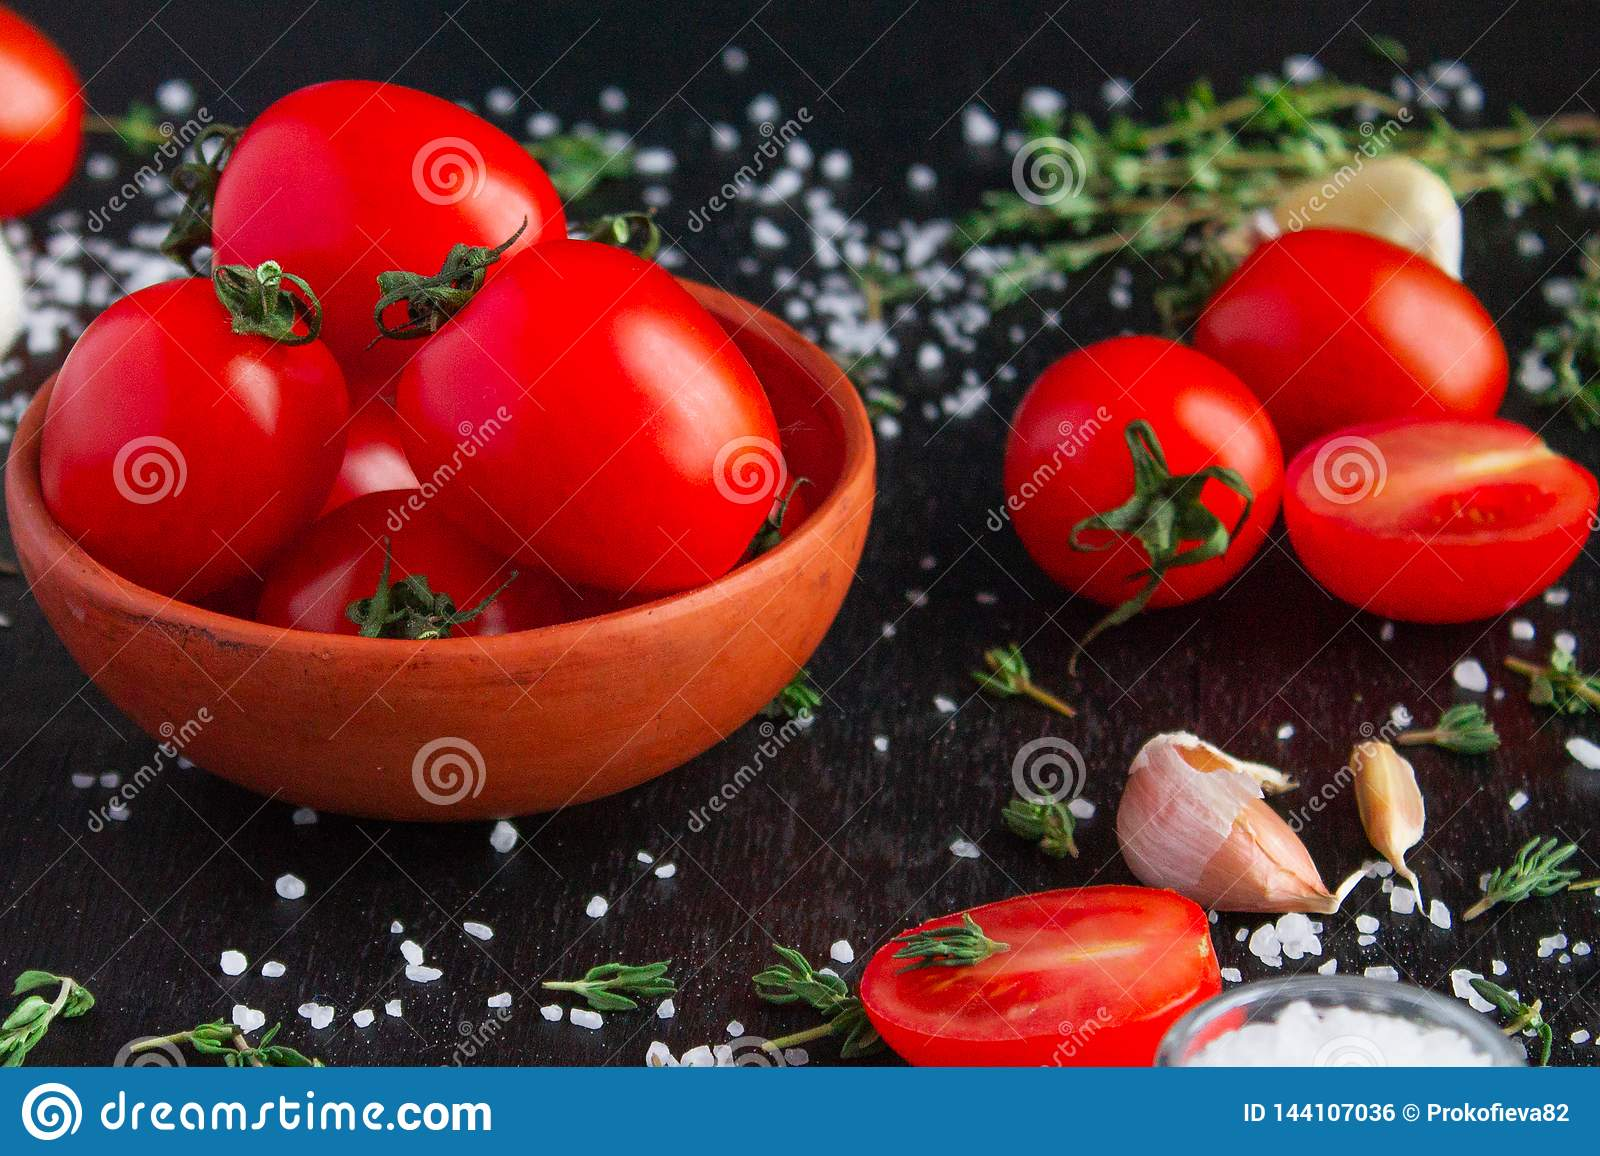 Tomatoes in a dish on a black background